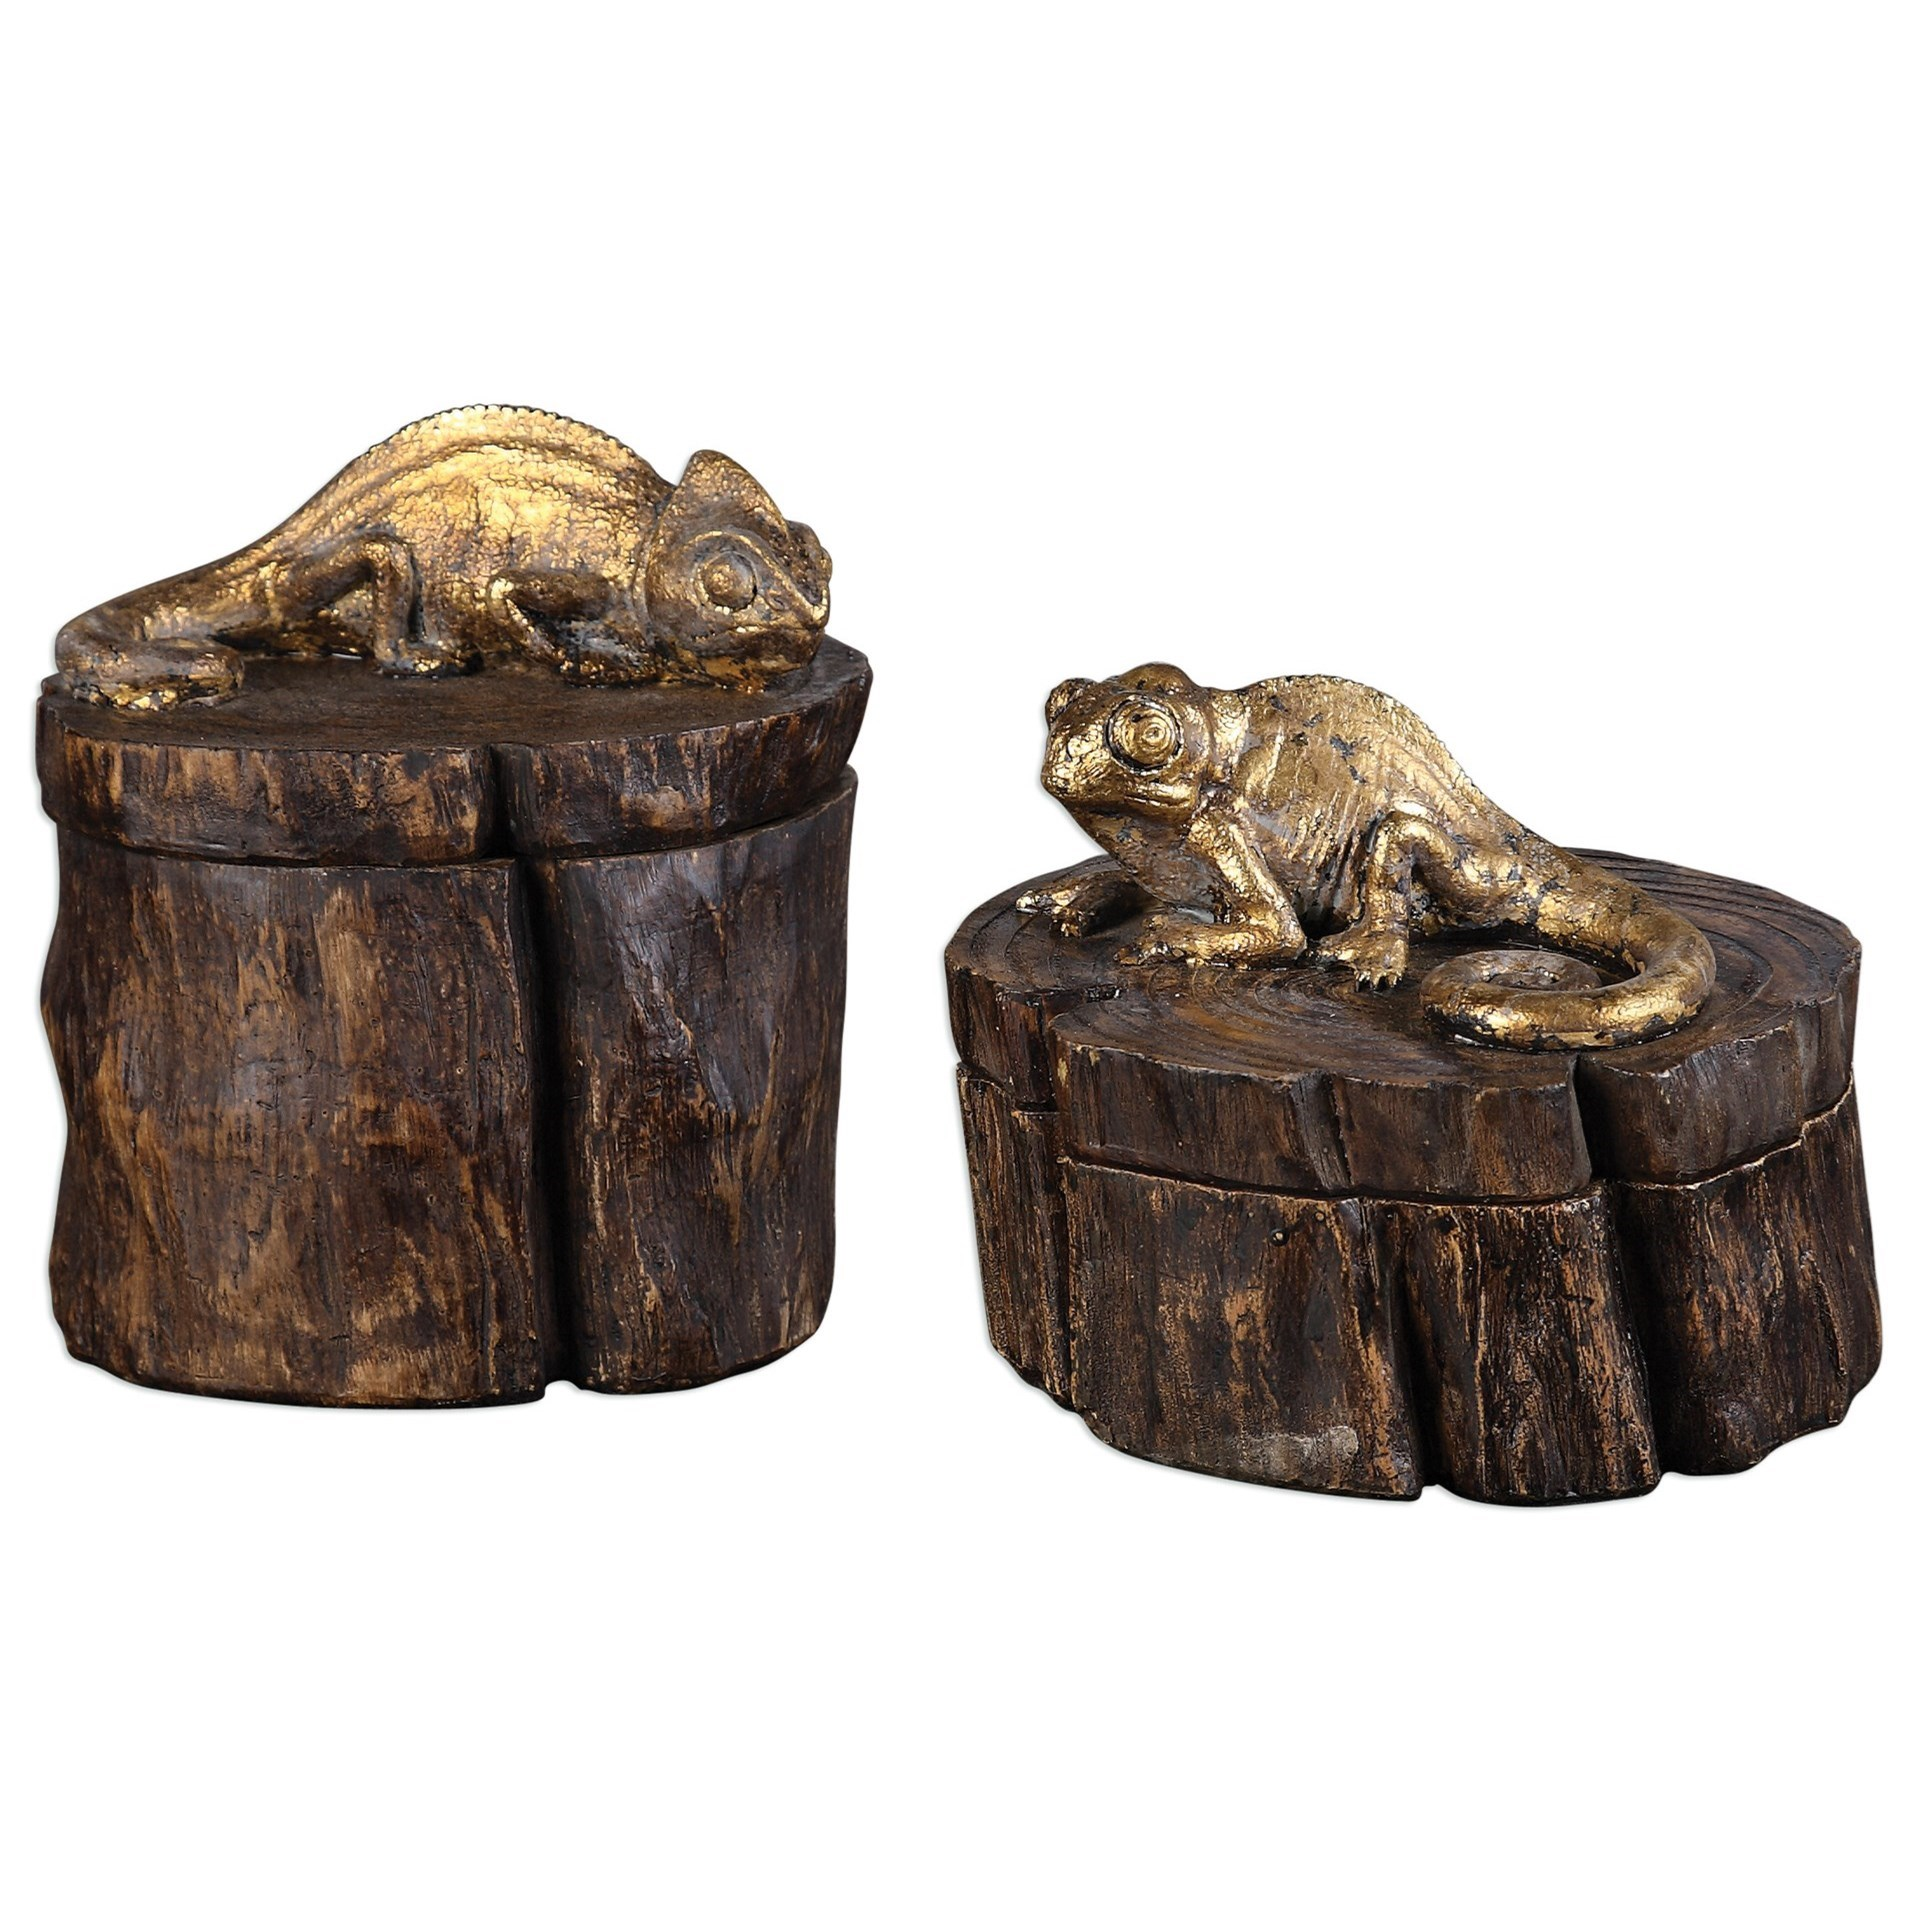 Uttermost Accessories Chameleon Boxes (Set of 2) - Item Number: 20169